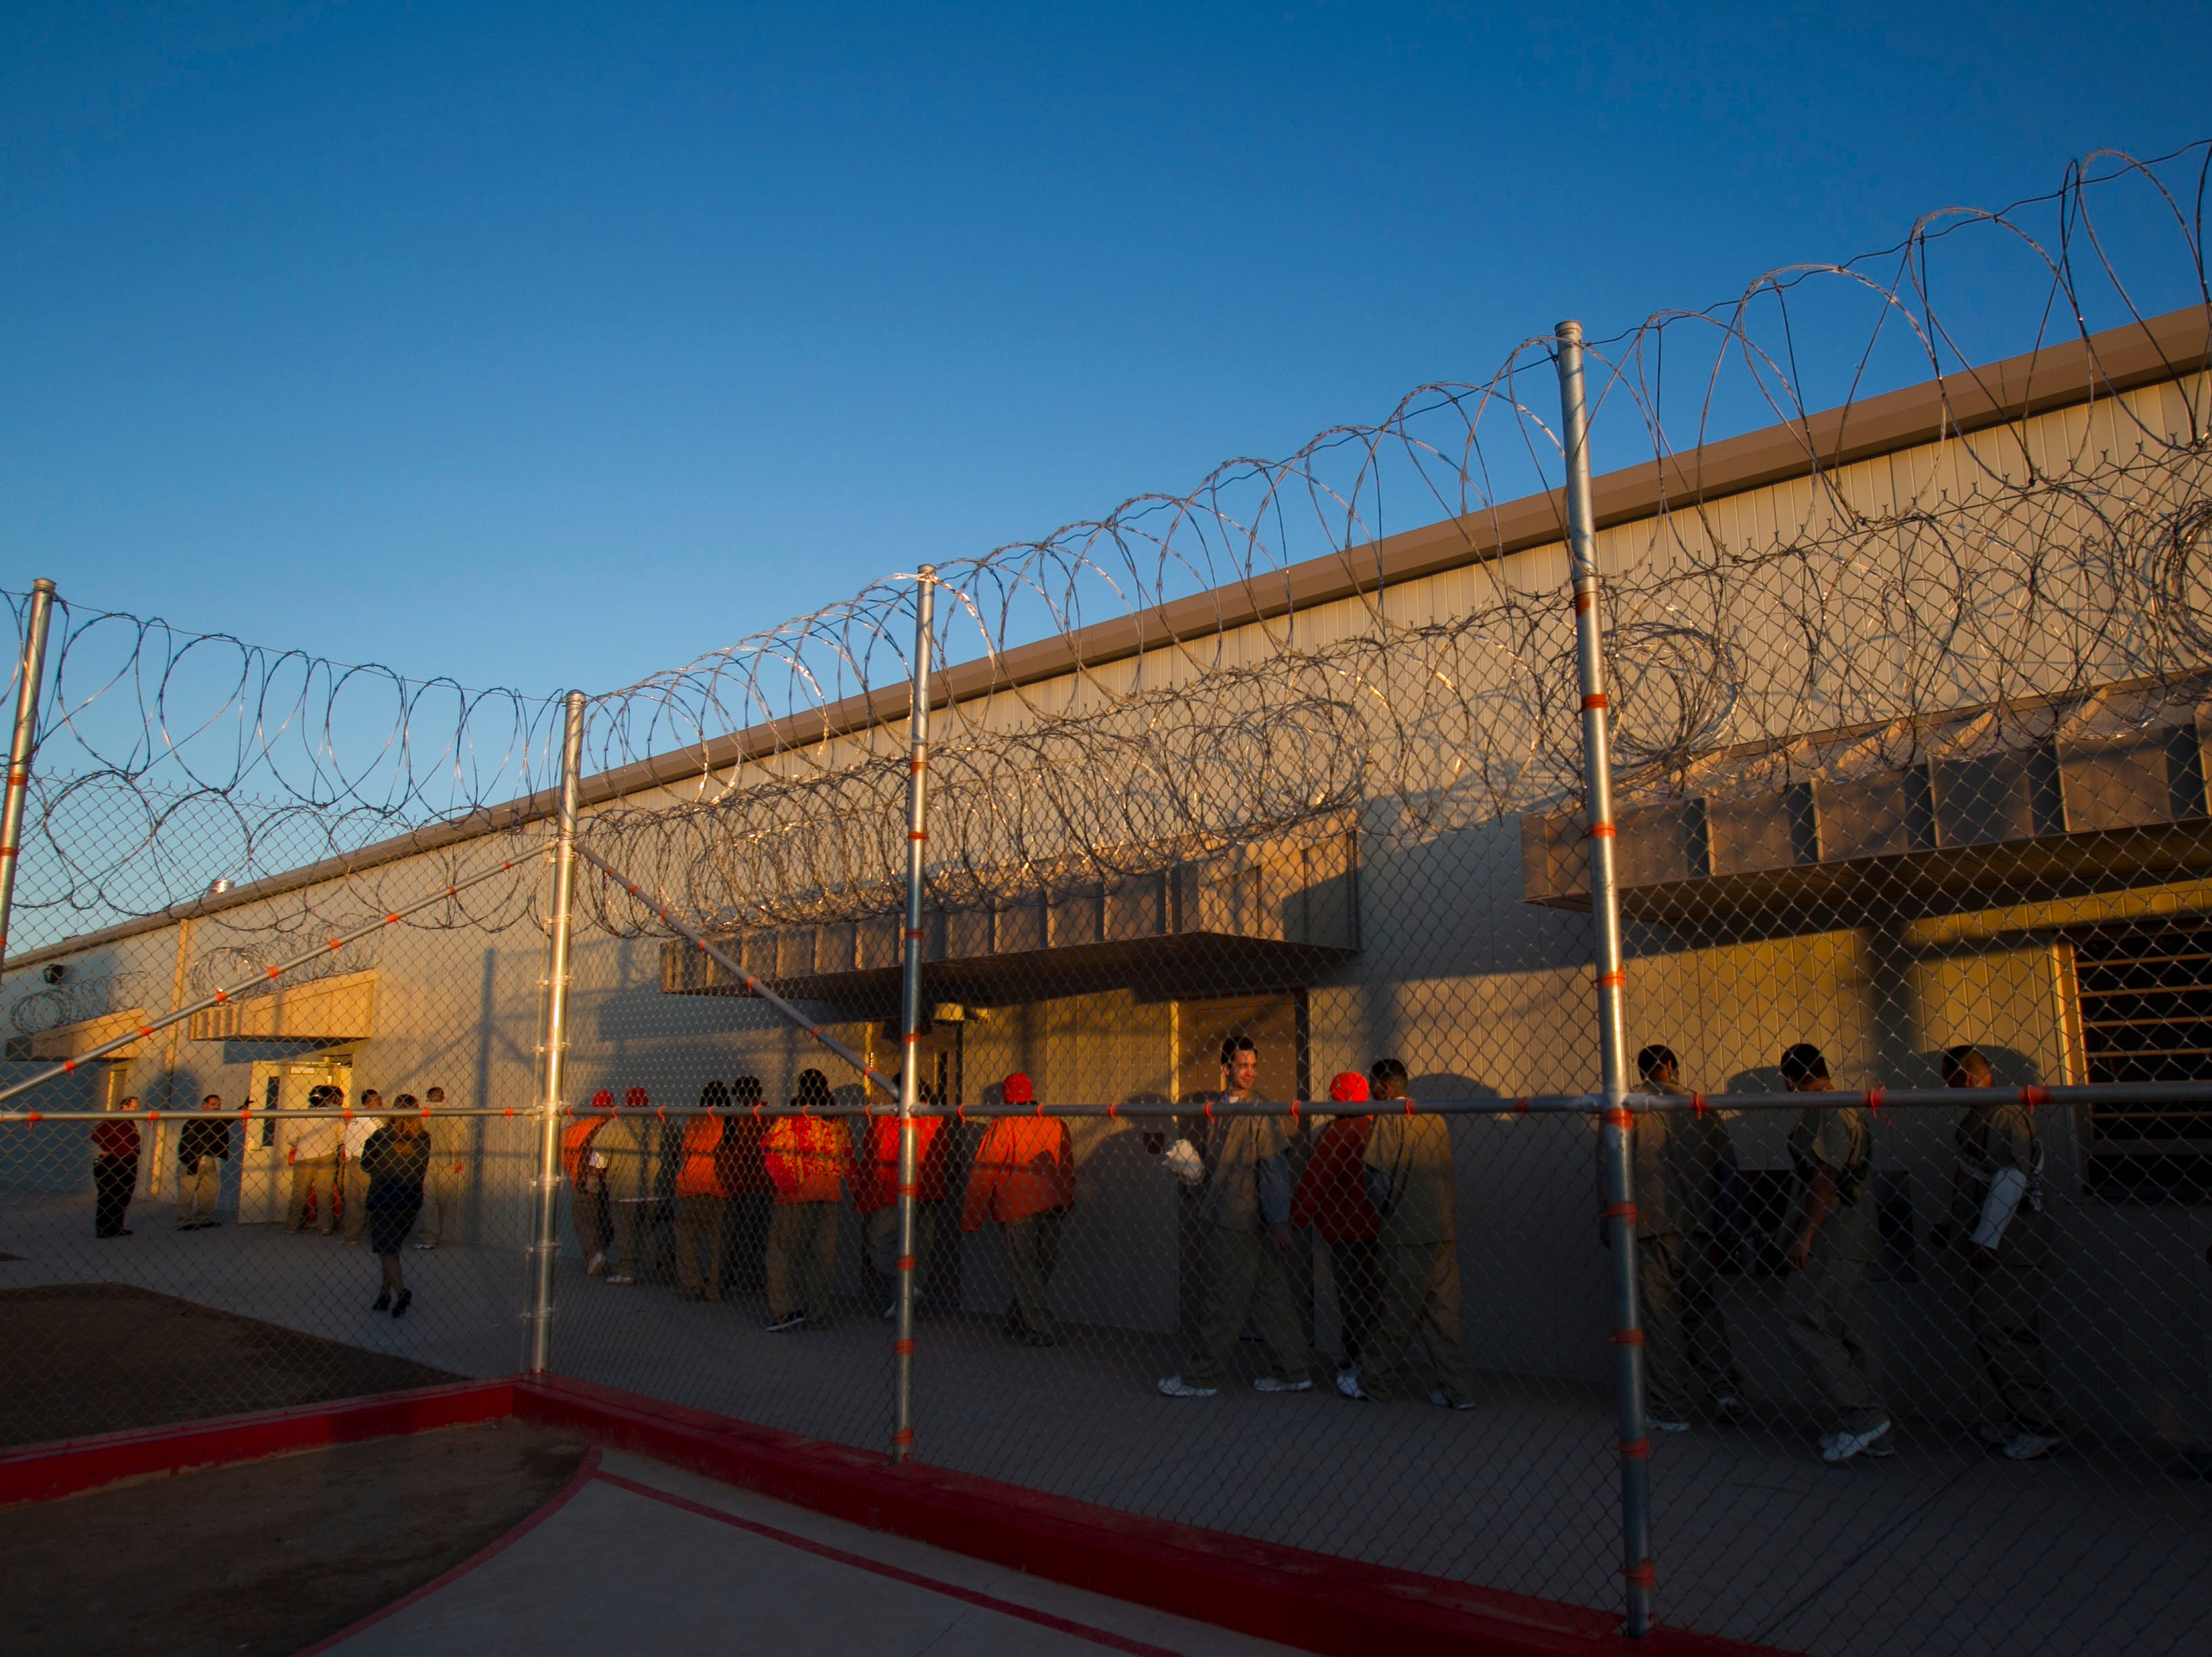 Saguaro Correctional Center in Eloy, which houses inmates from Hawaii serving lengthy sentences, brought in a spiritual adviser to lead up to 100 inmates in a series of rituals and prayers for the beginning of the Makahiki season of harvest in 2011.